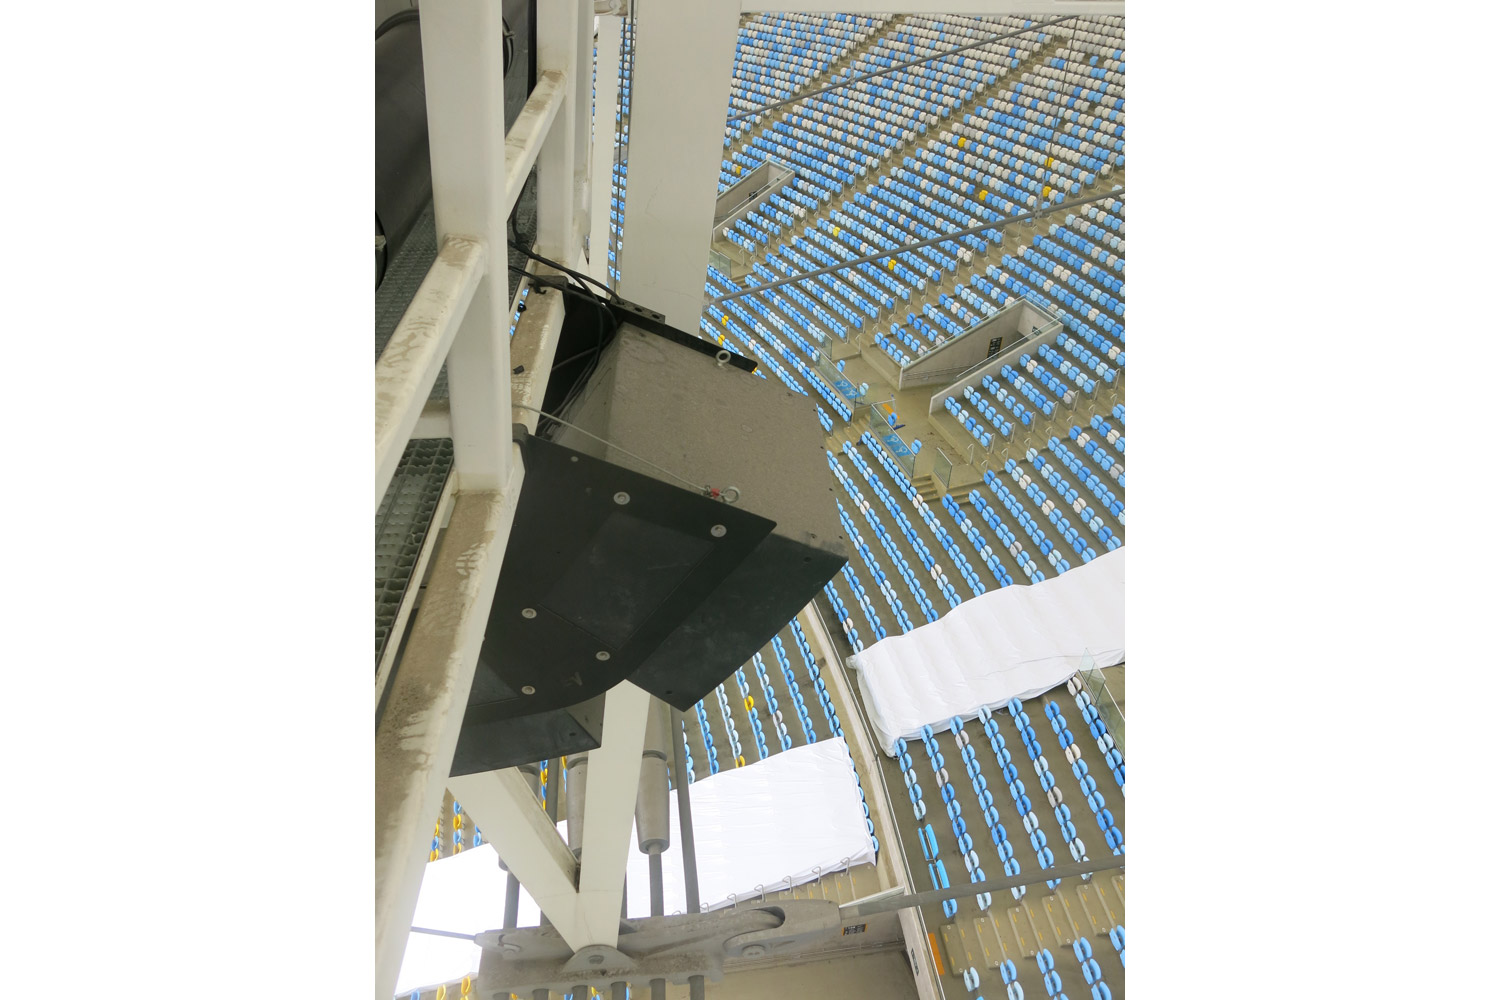 Maracana Stadium in Rio de Janeiro, Brazil. One of the biggest soccer stadiums in the world, home of the 2014 Olympic Games and World Cup. WSDG was called for consulting and installation of the audio/video of the whole facility. Sound systems close-up.